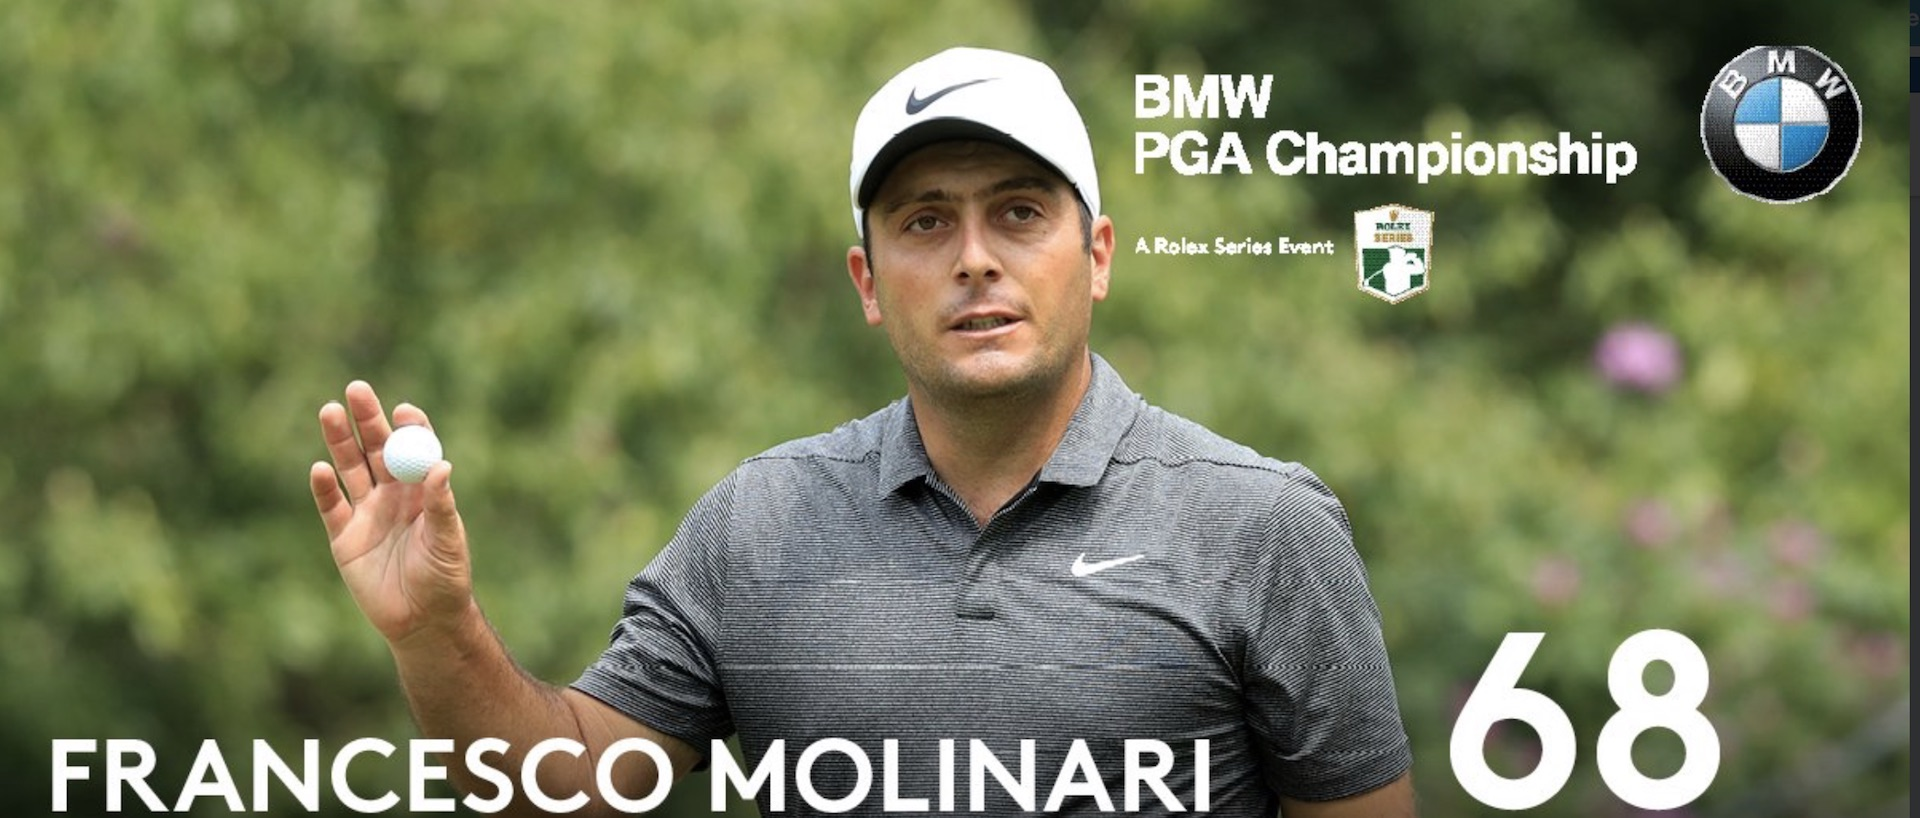 Francesco Molinari holds off Rory McIlroy to win BMW PGA Championship